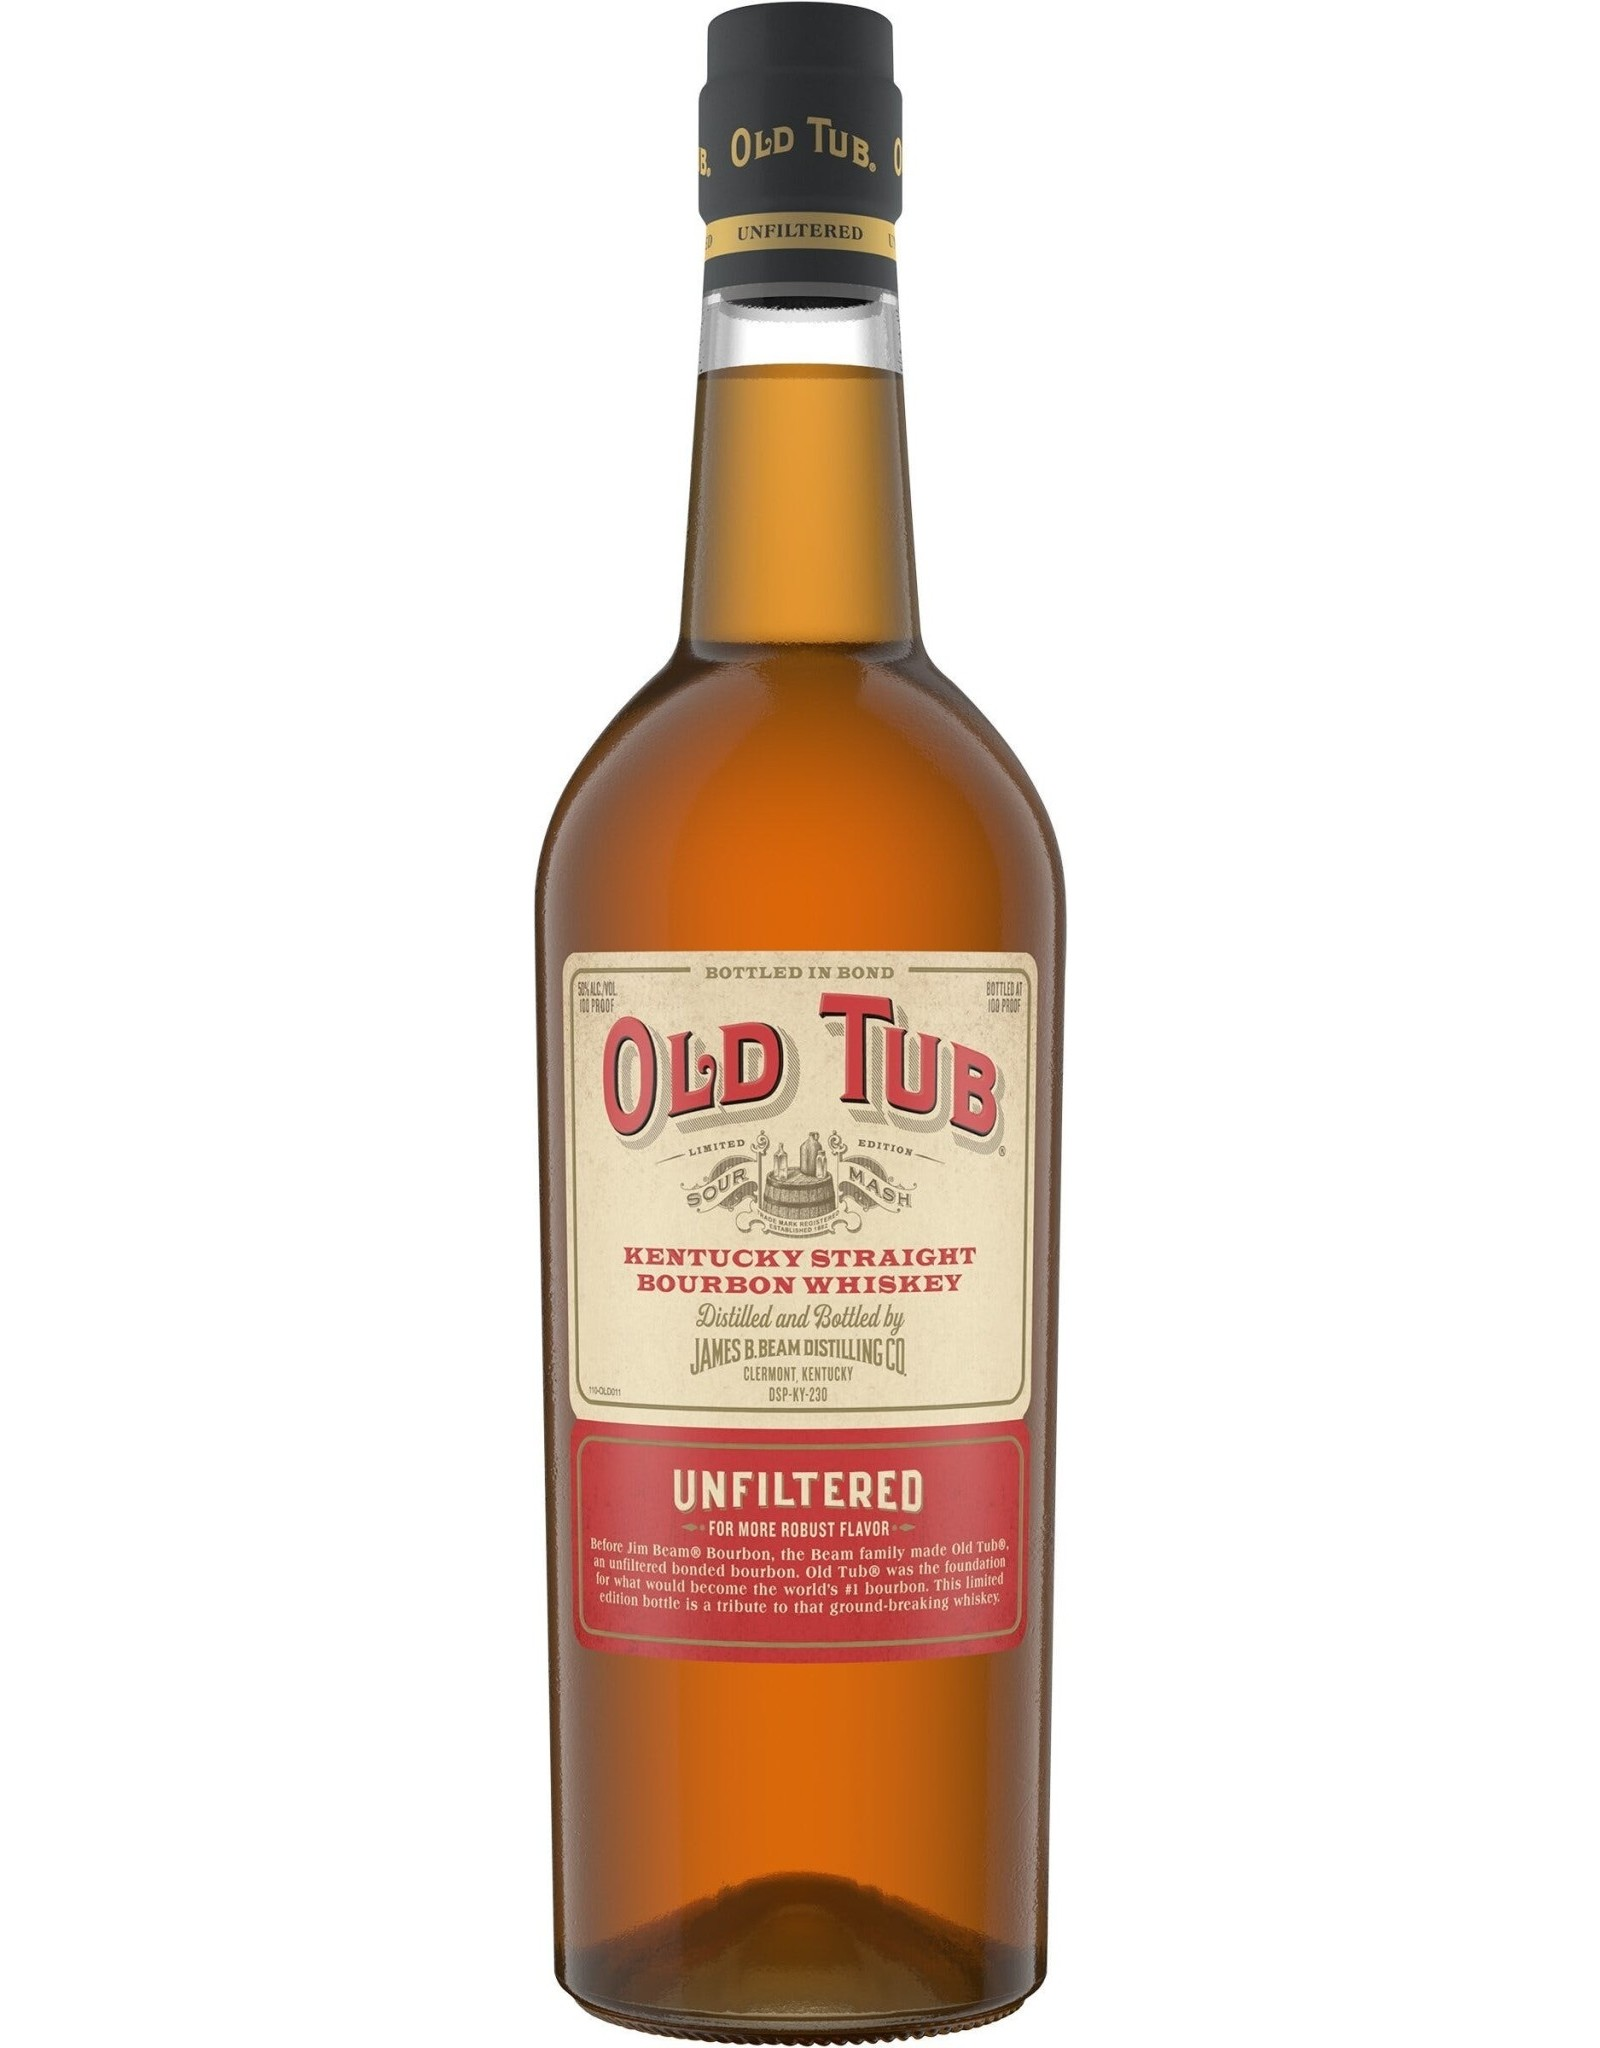 Old Tub Kentucky Straight Bourbon Whiskey Unfiltered